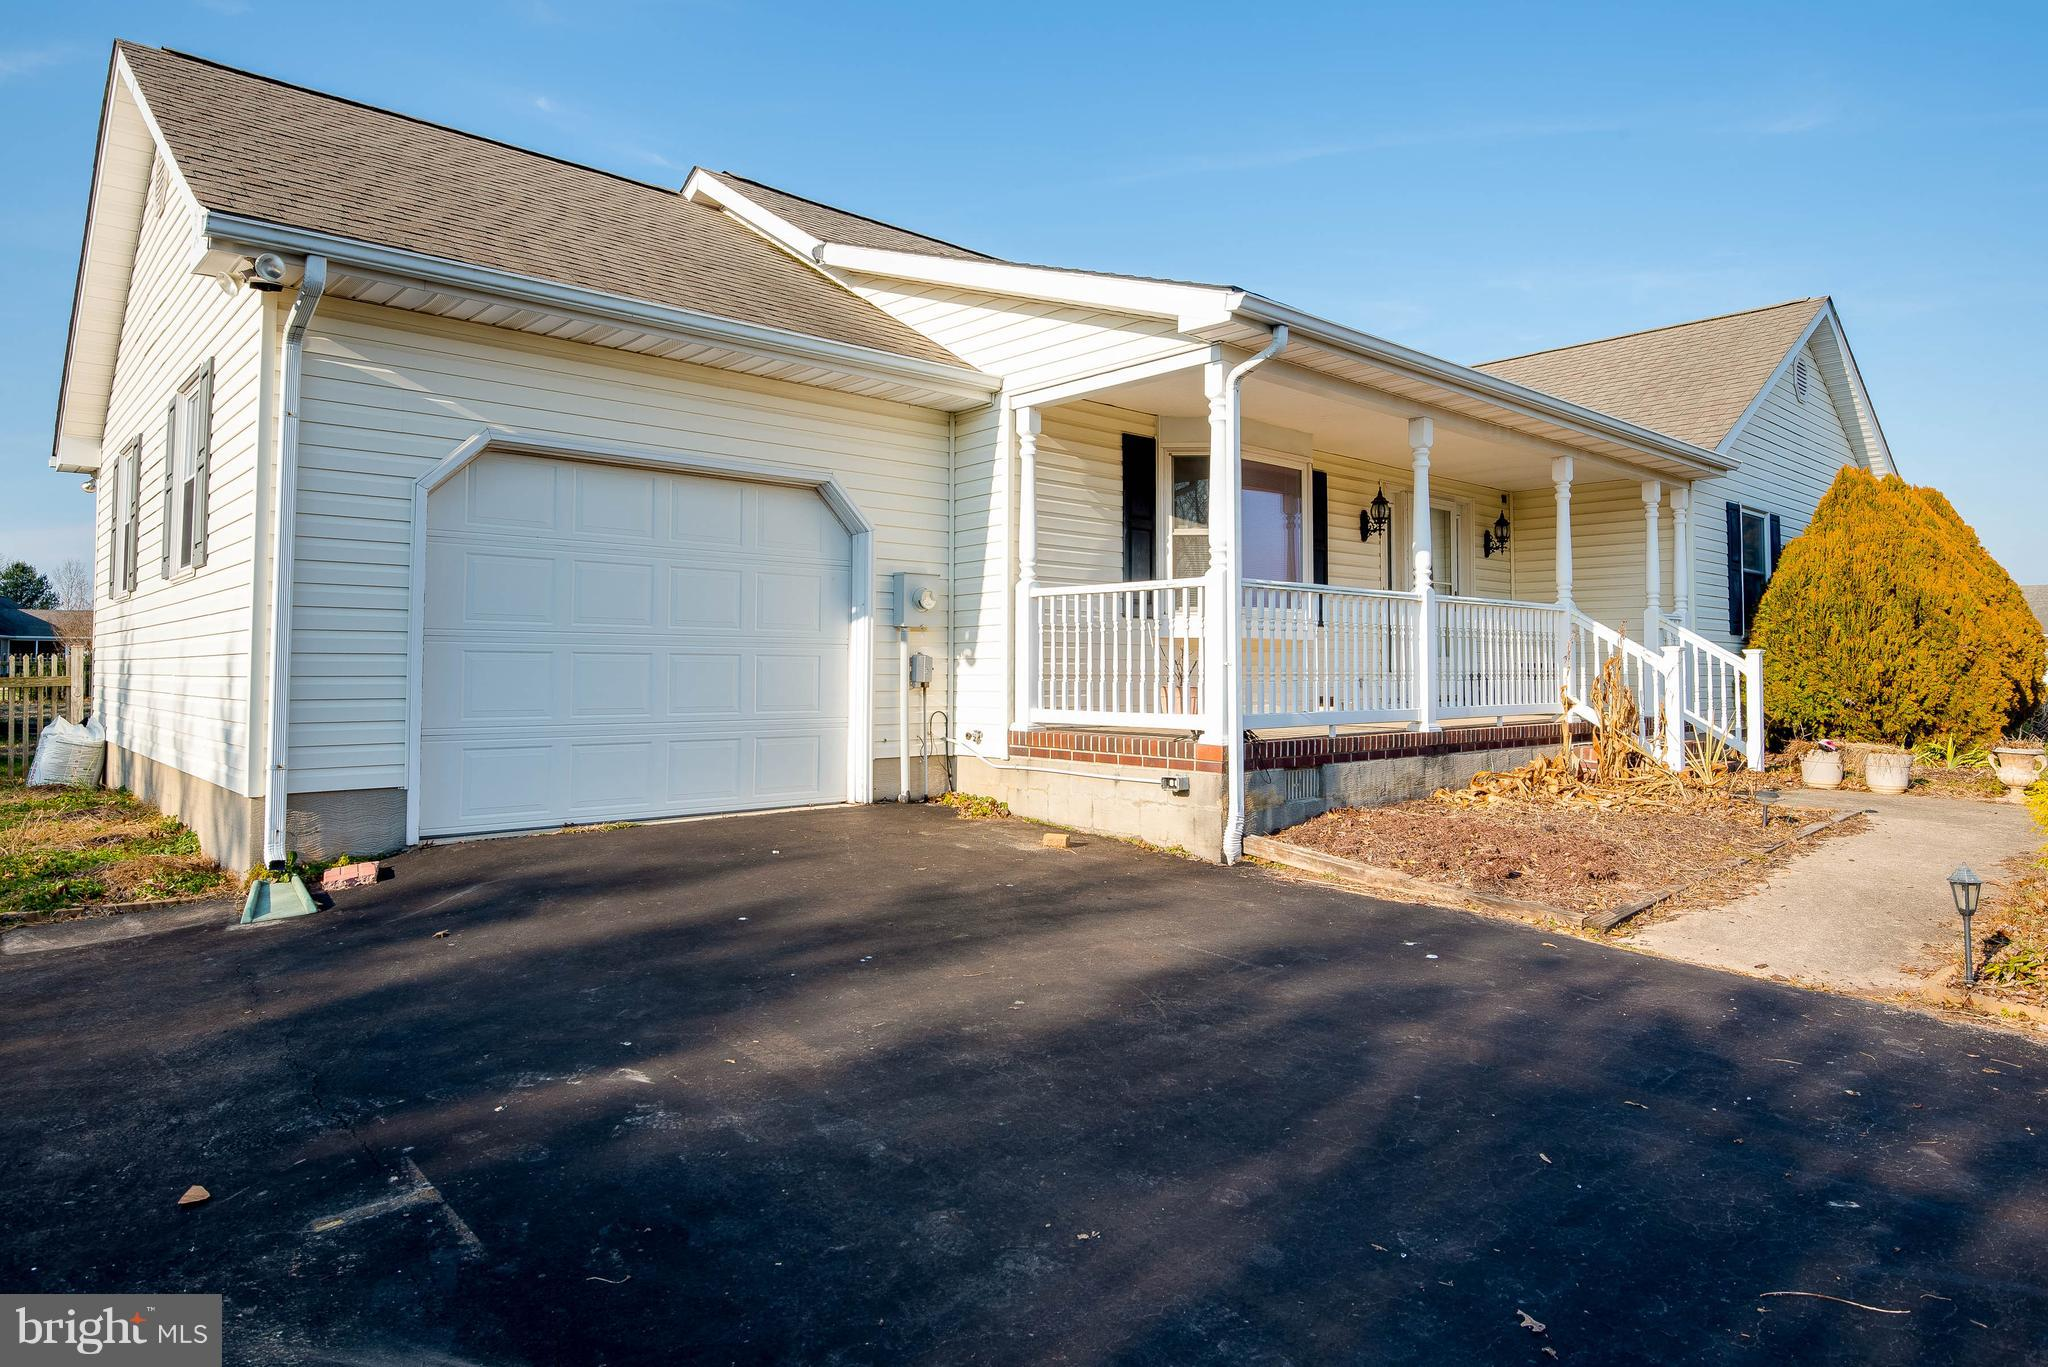 11481 REED CIRCLE, RIDGELY, MD 21660